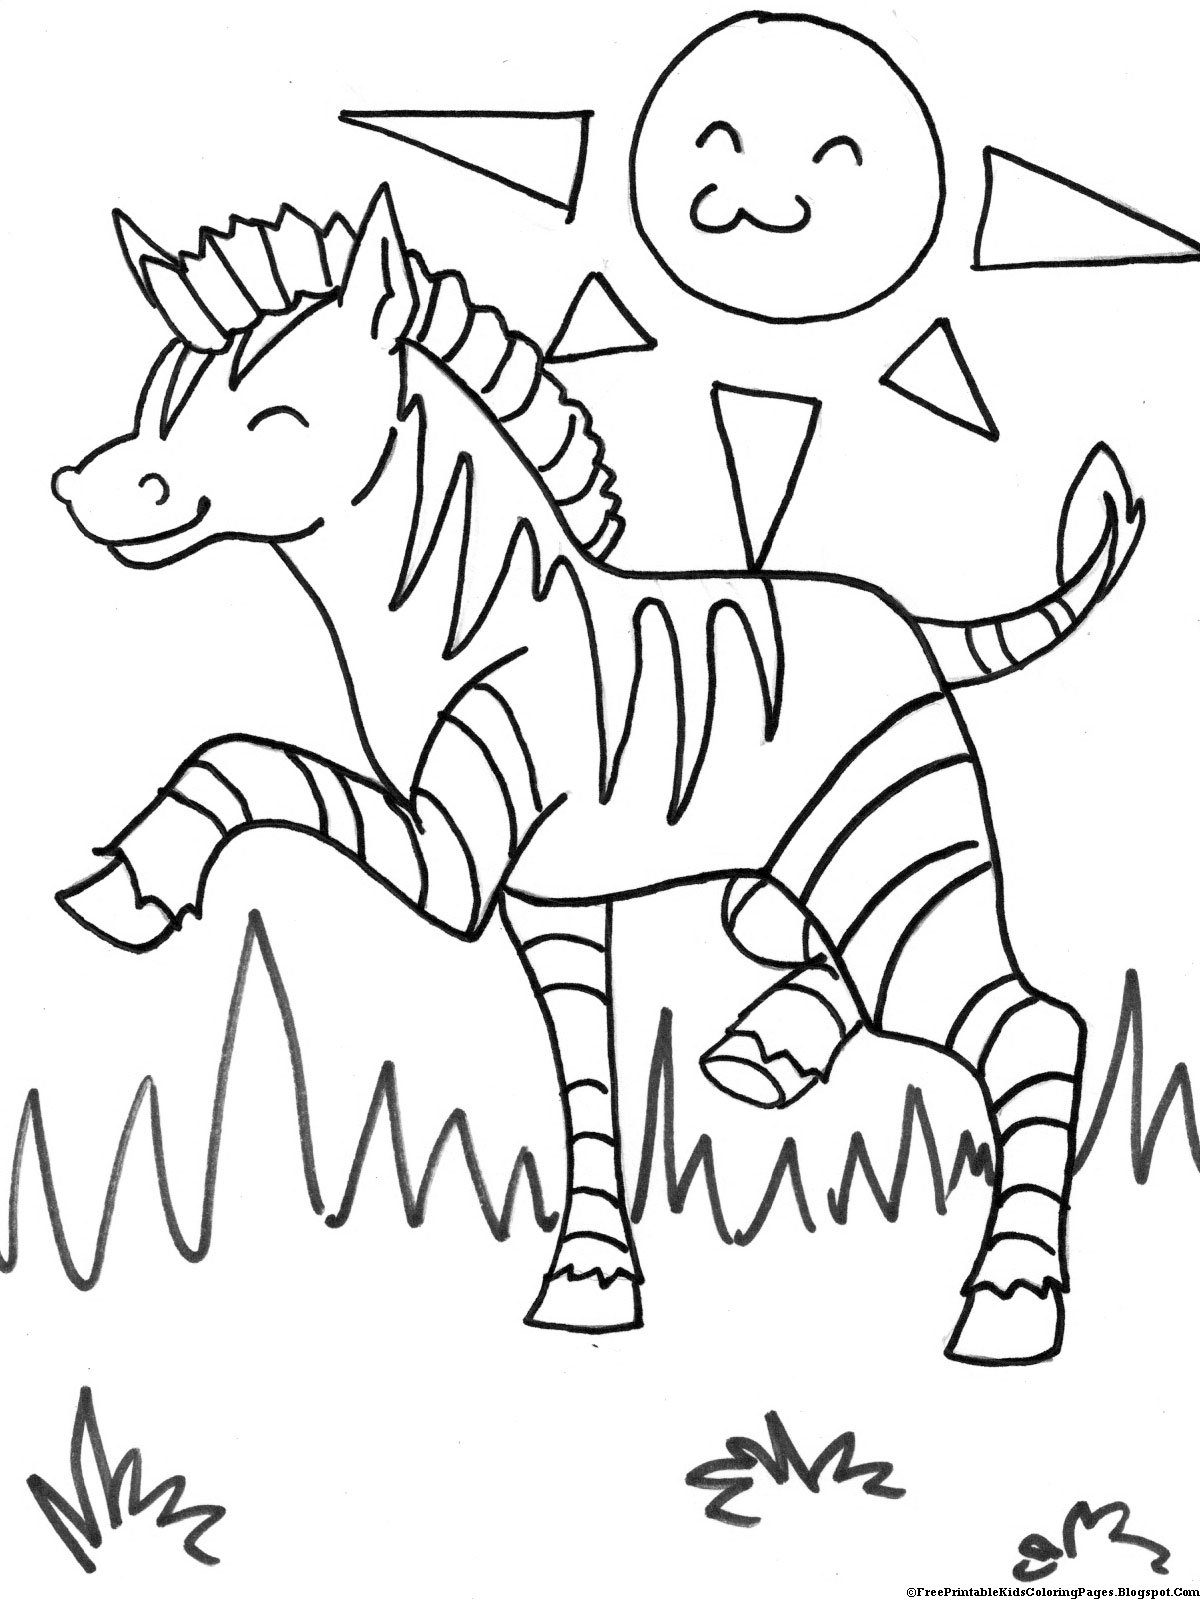 fun coloring pictures cartoon coloring pages to download and print for free pictures coloring fun